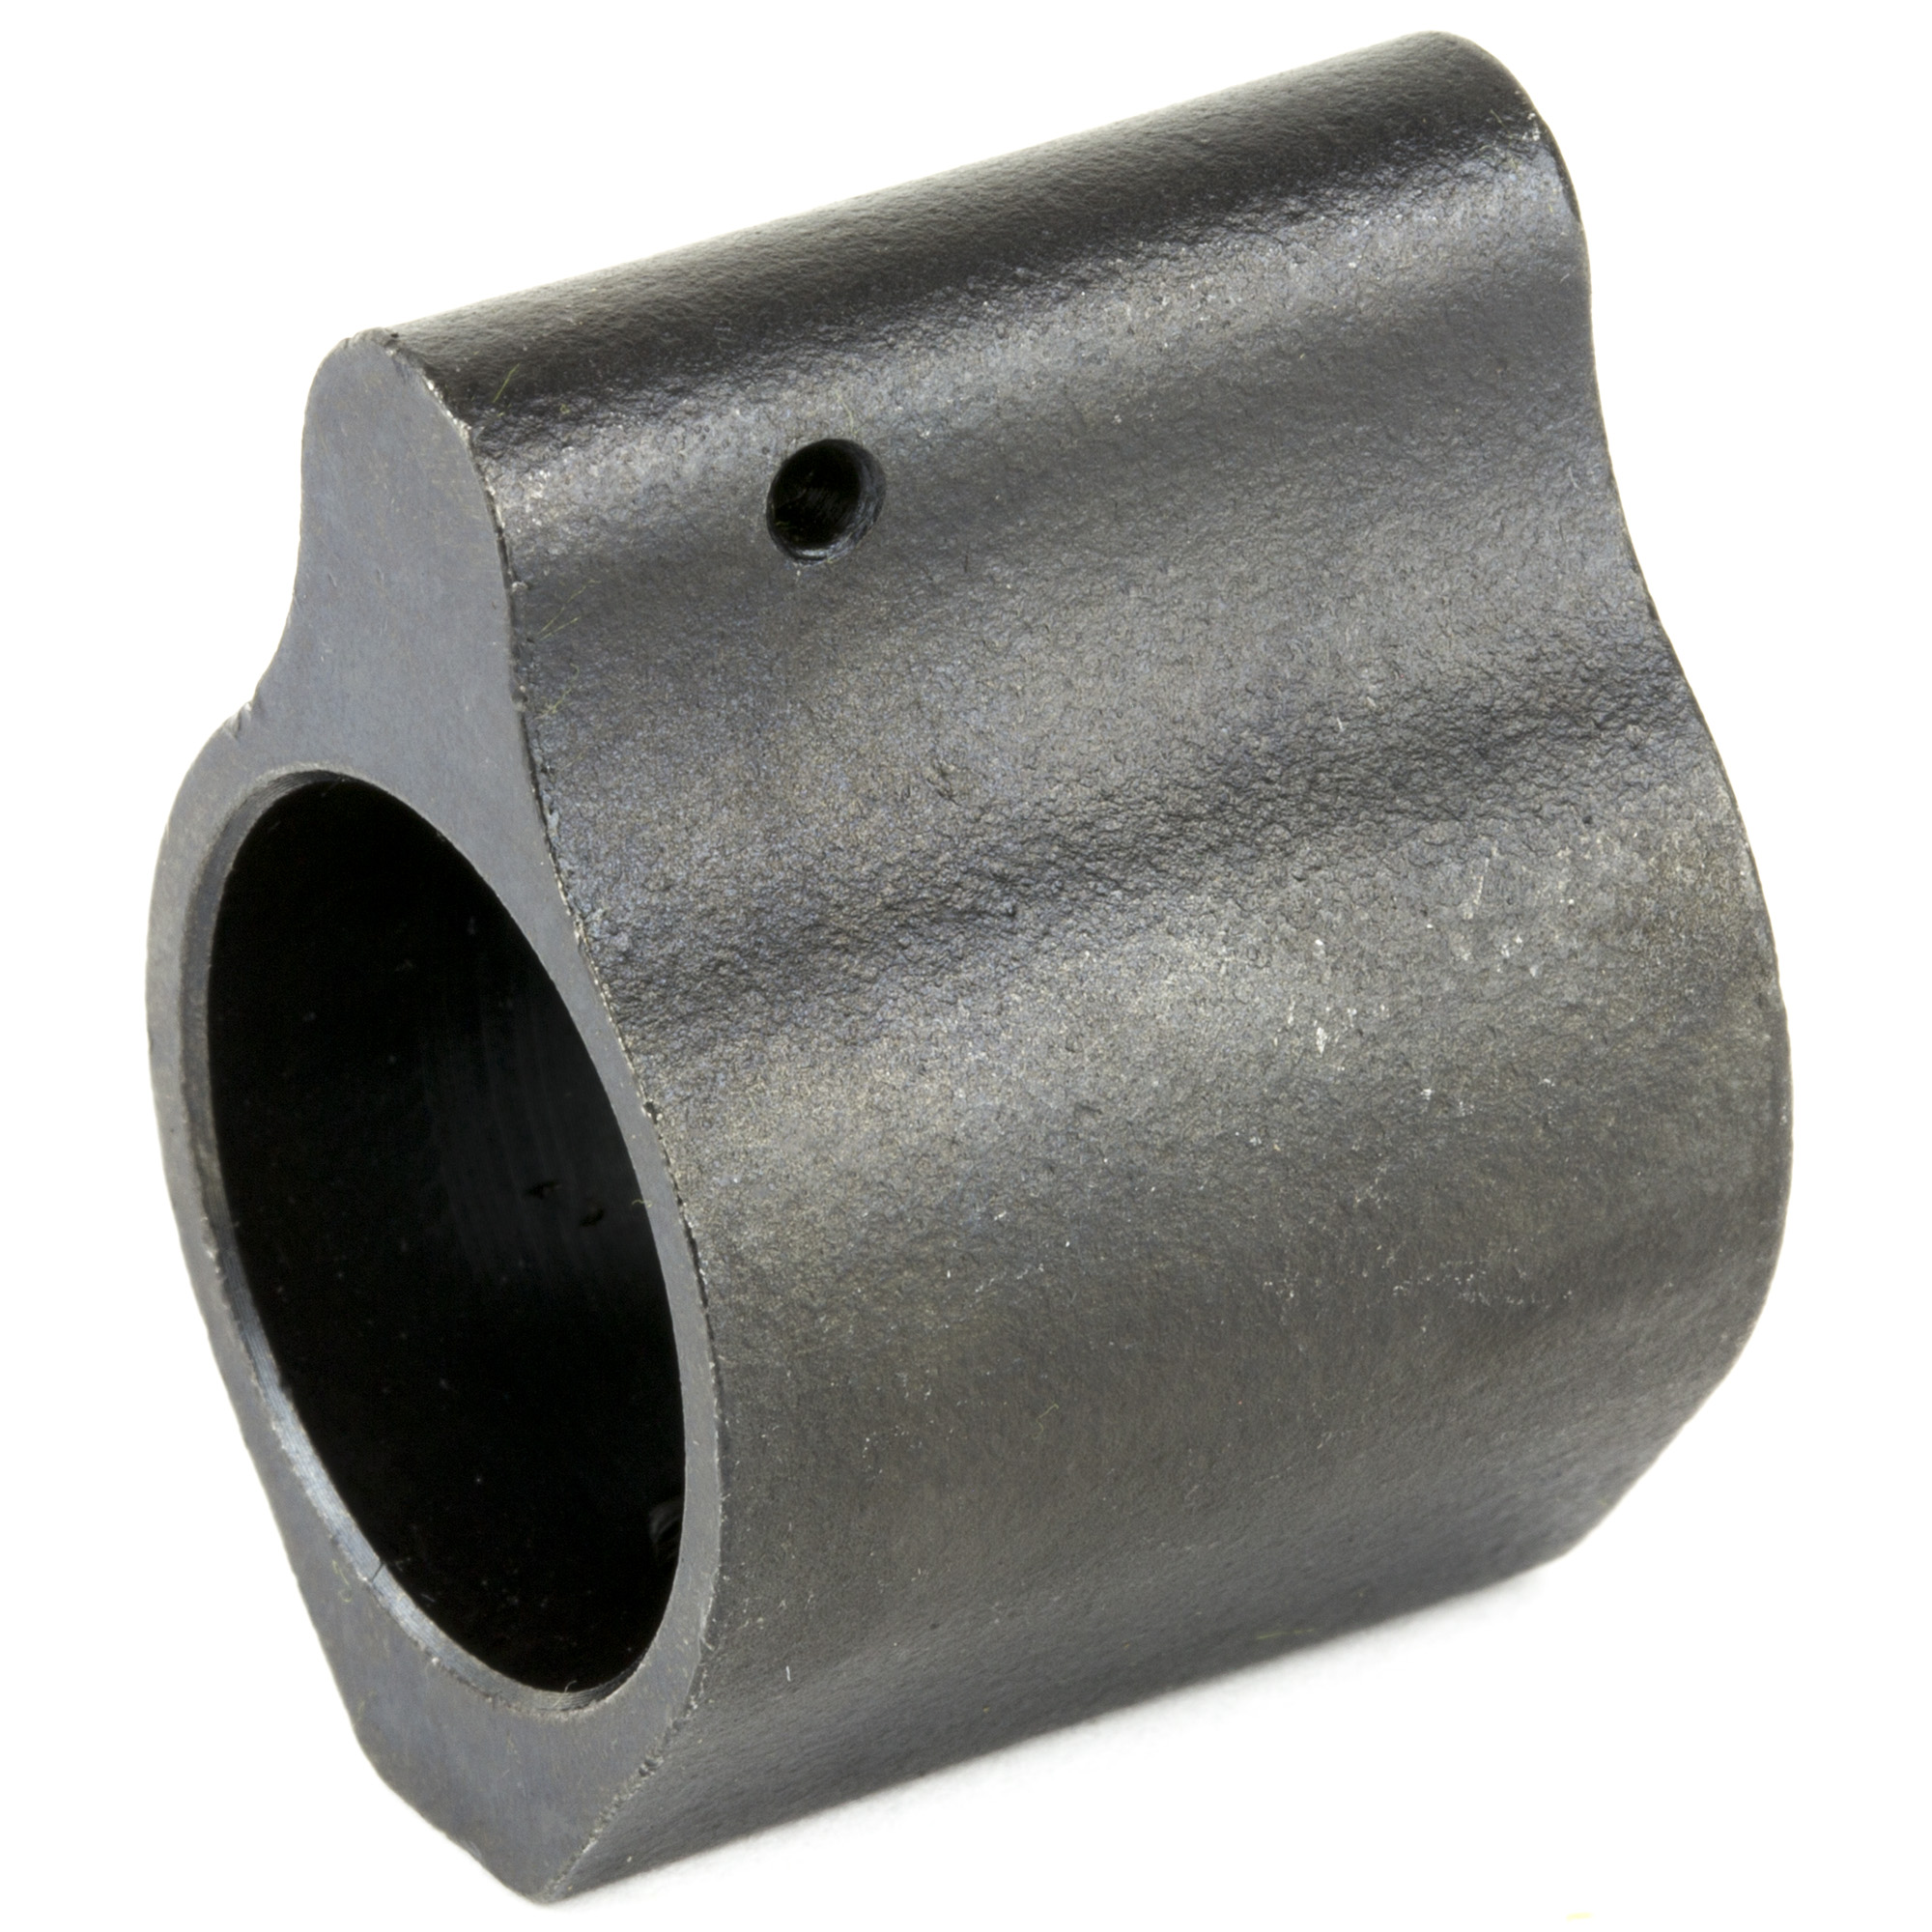 This low profile gas block was designed to allow an extended handguard to cover the gas return area of the barrel. It is machined from steel and Black Nitride finished.